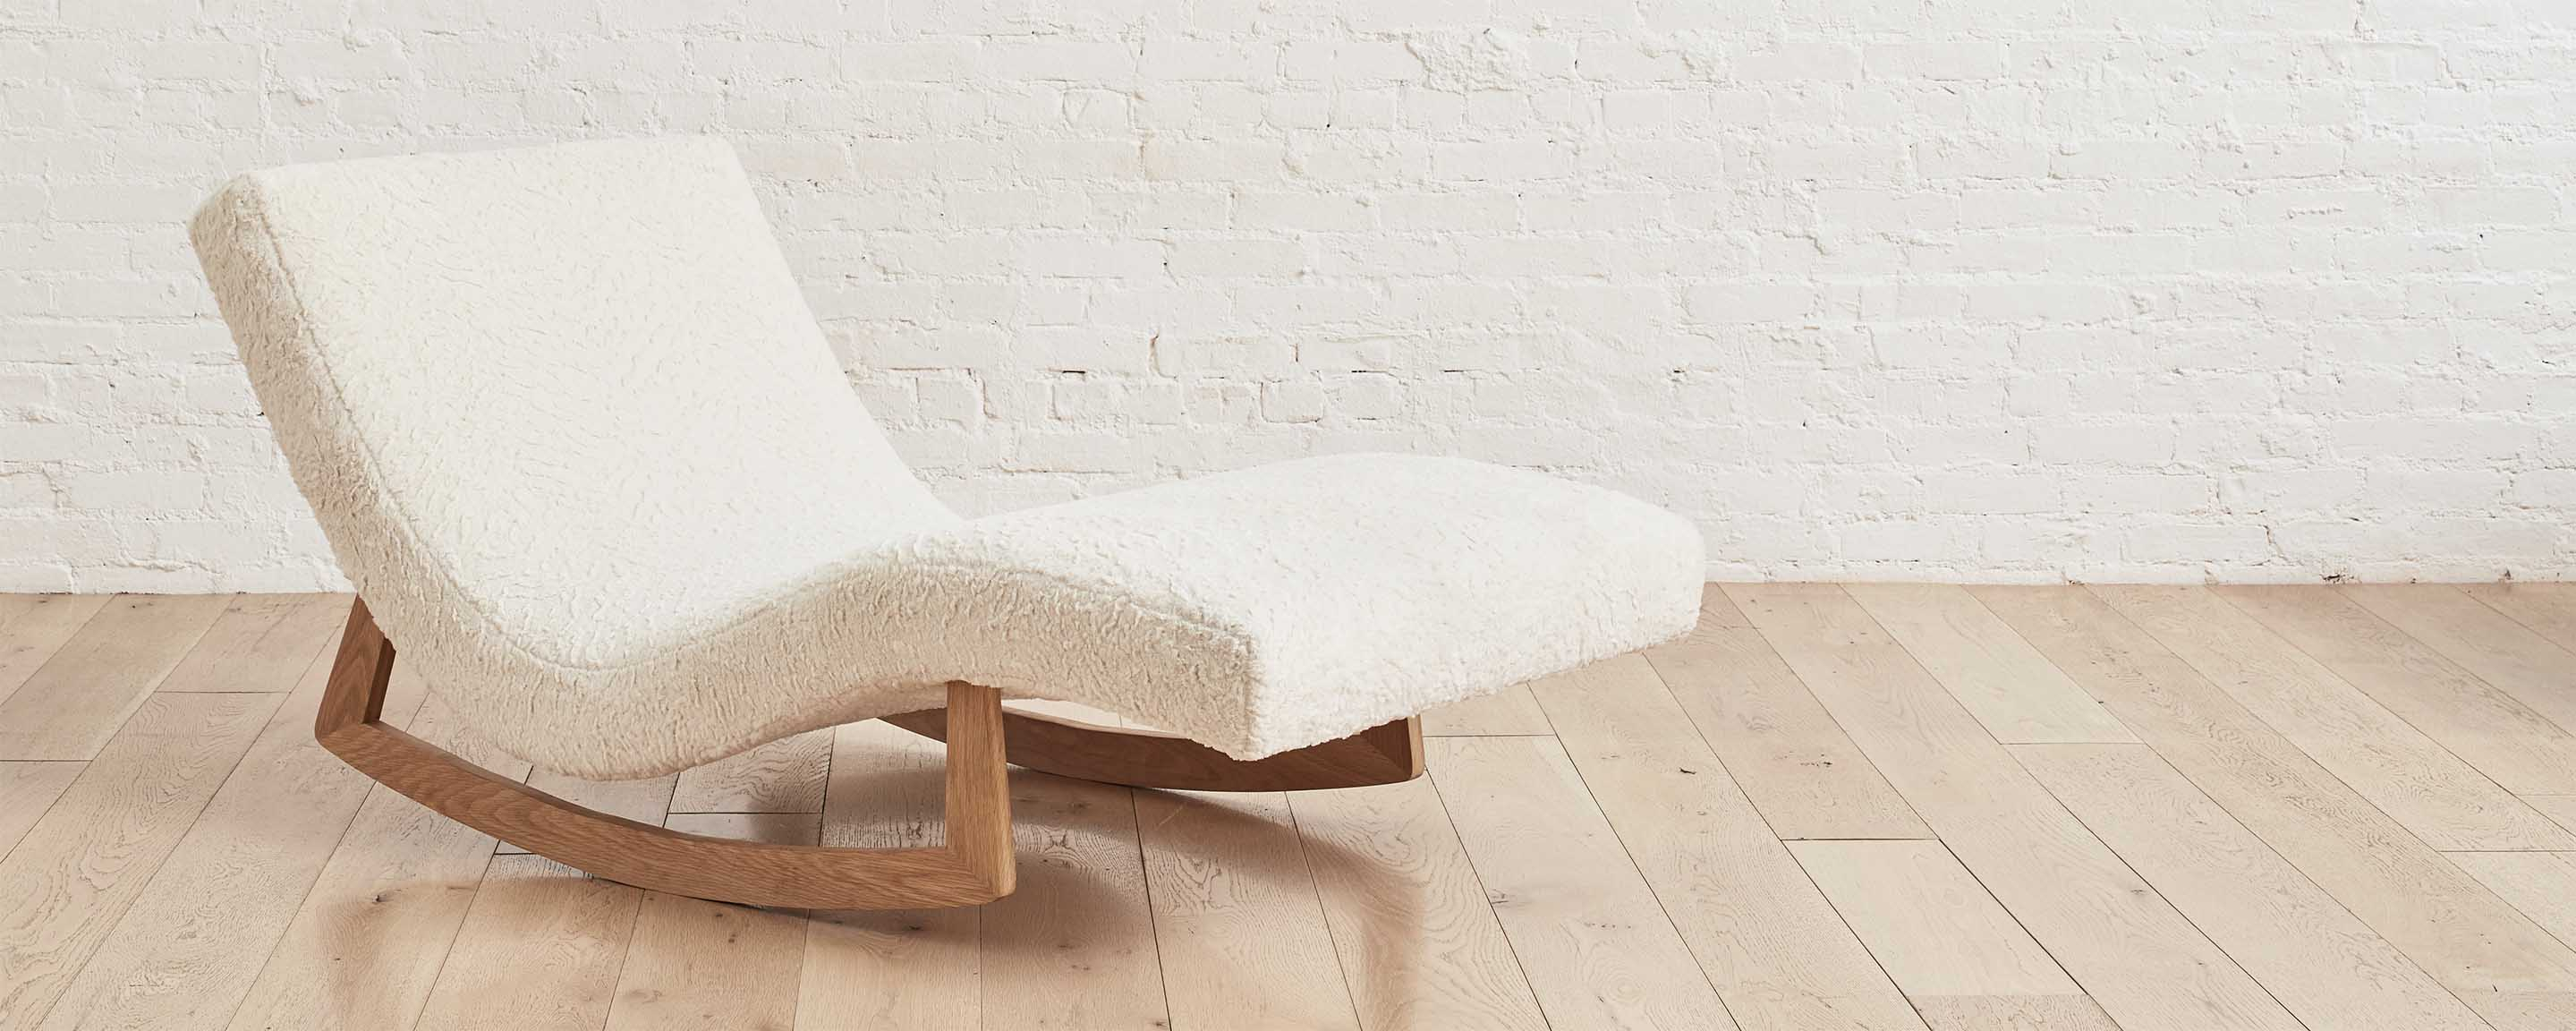 The Homenature Leisurama Rocking Chaise